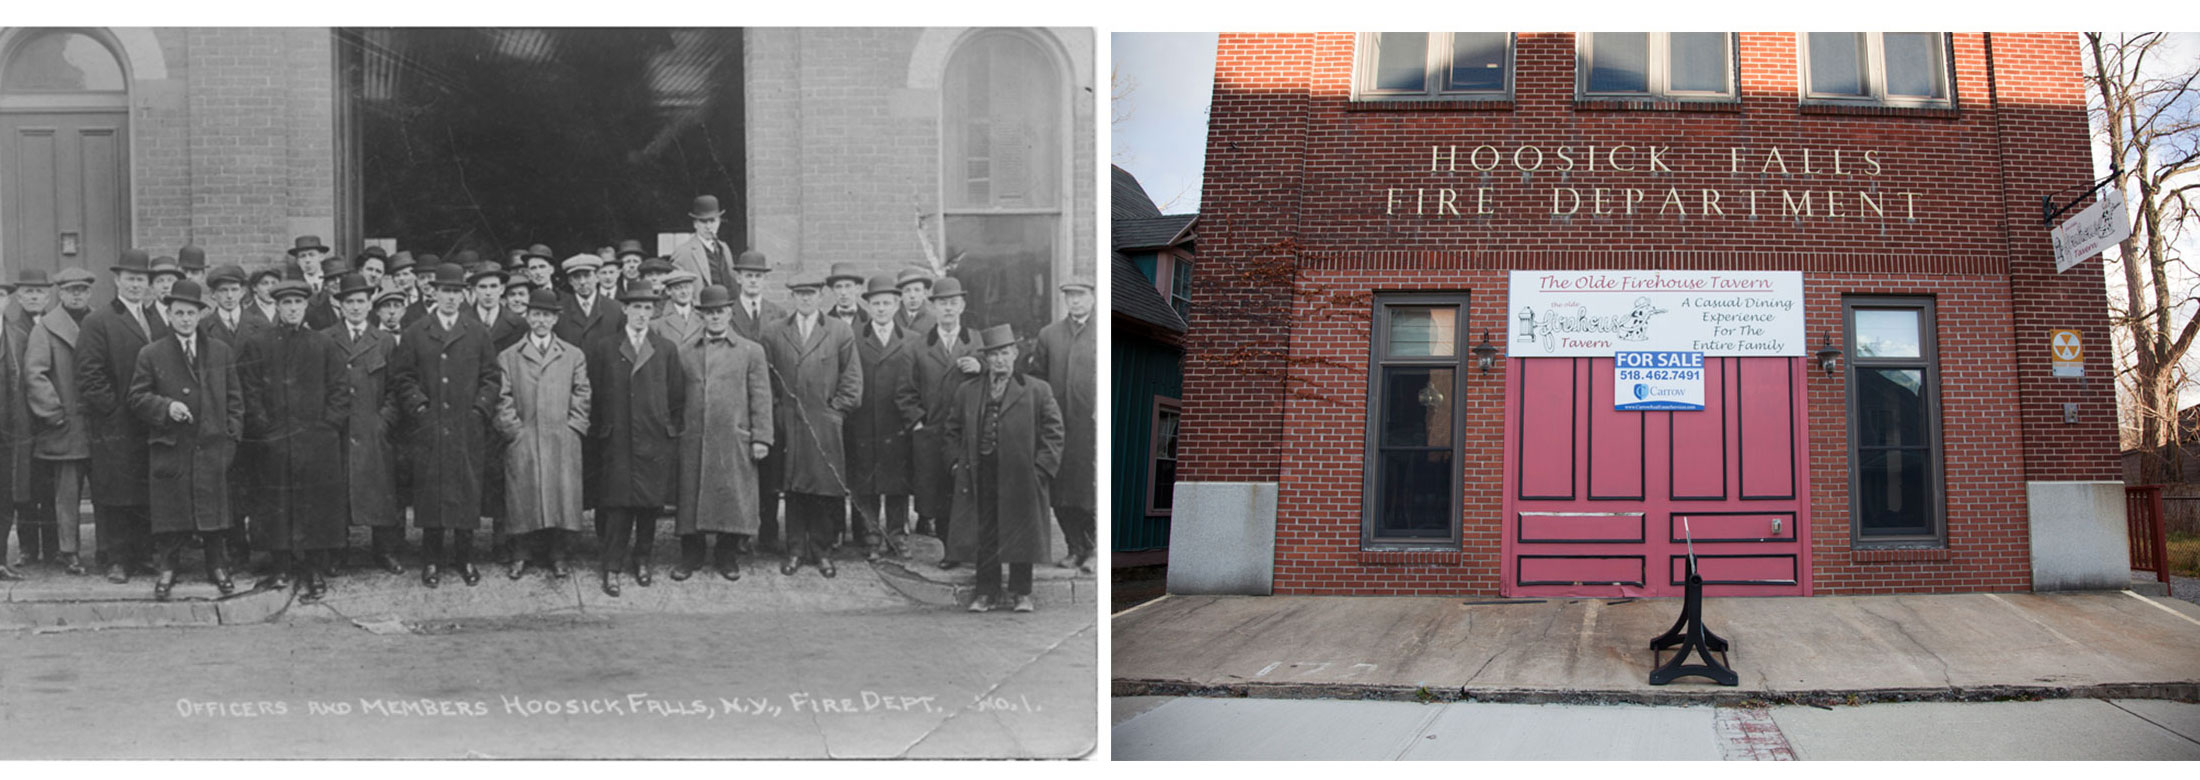 The Hoosick Falls Fire Department in the early 1900's. It was transformed into a restaurant that went quickly out of business and is now for sale.